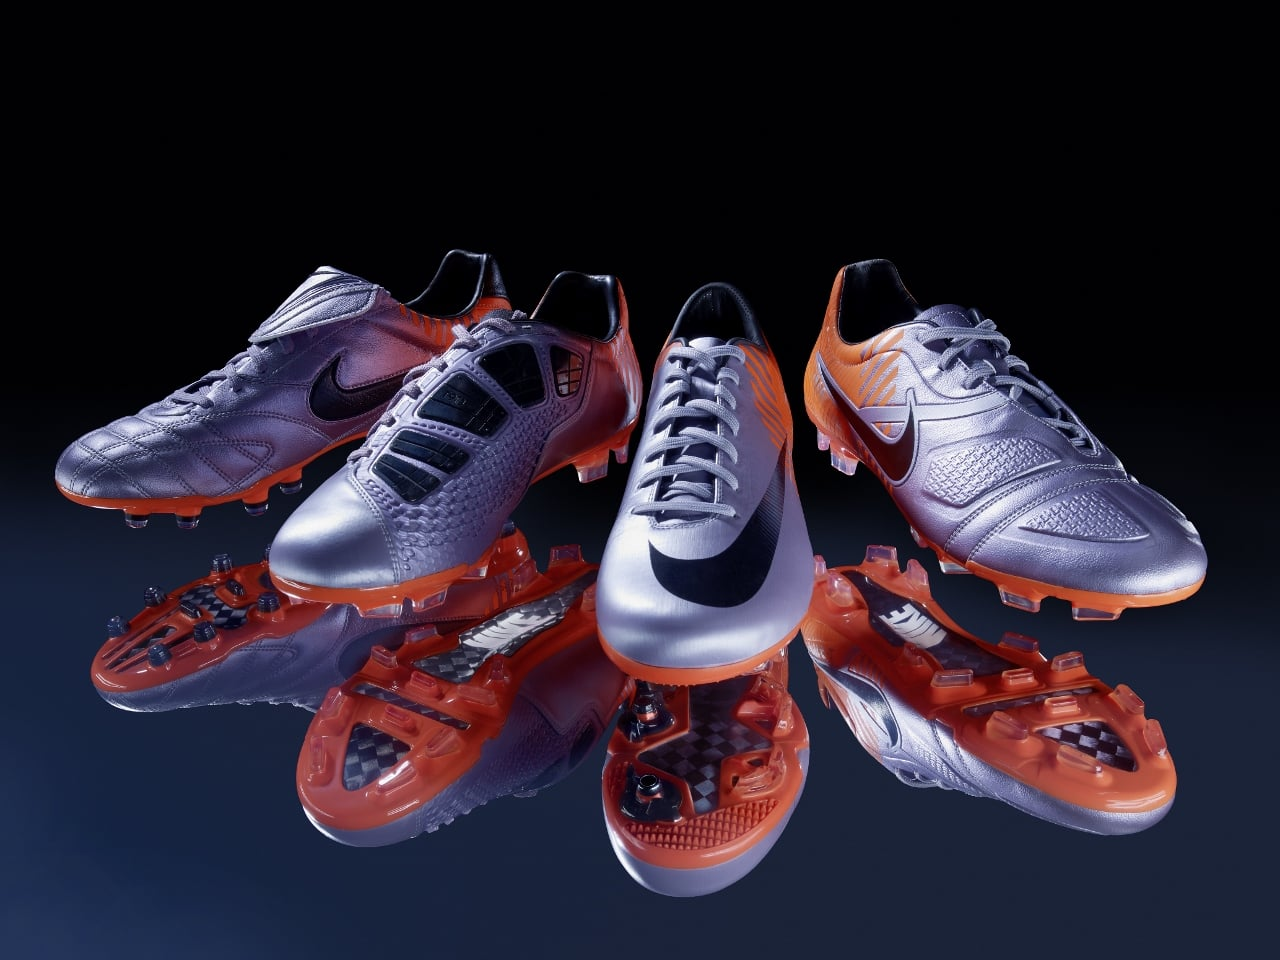 2010-nike-football-history-elite-pack_original (1280x960)